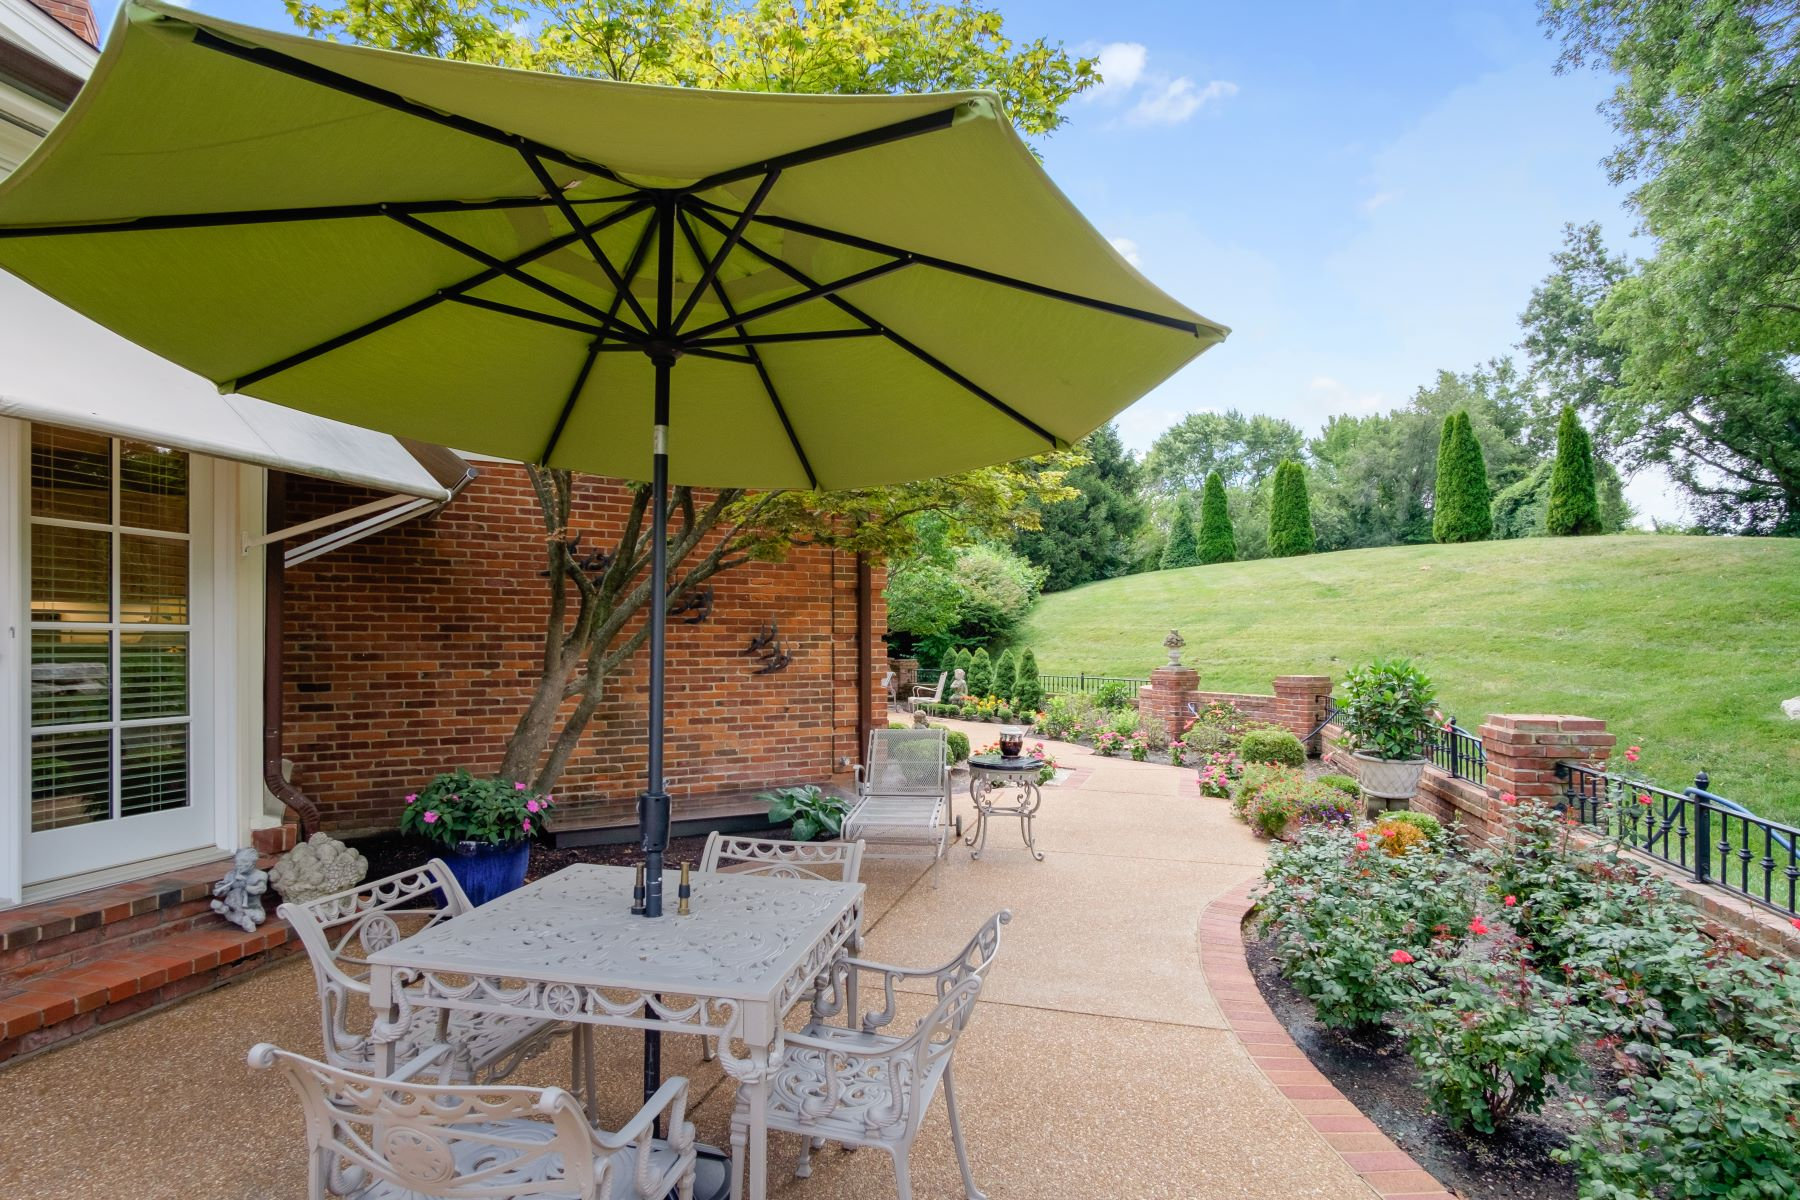 Additional photo for property listing at Luxury Condo In The Heart Of Creve Coeur 20 Woodbridge Manor Road Creve Coeur, Missouri 63141 United States